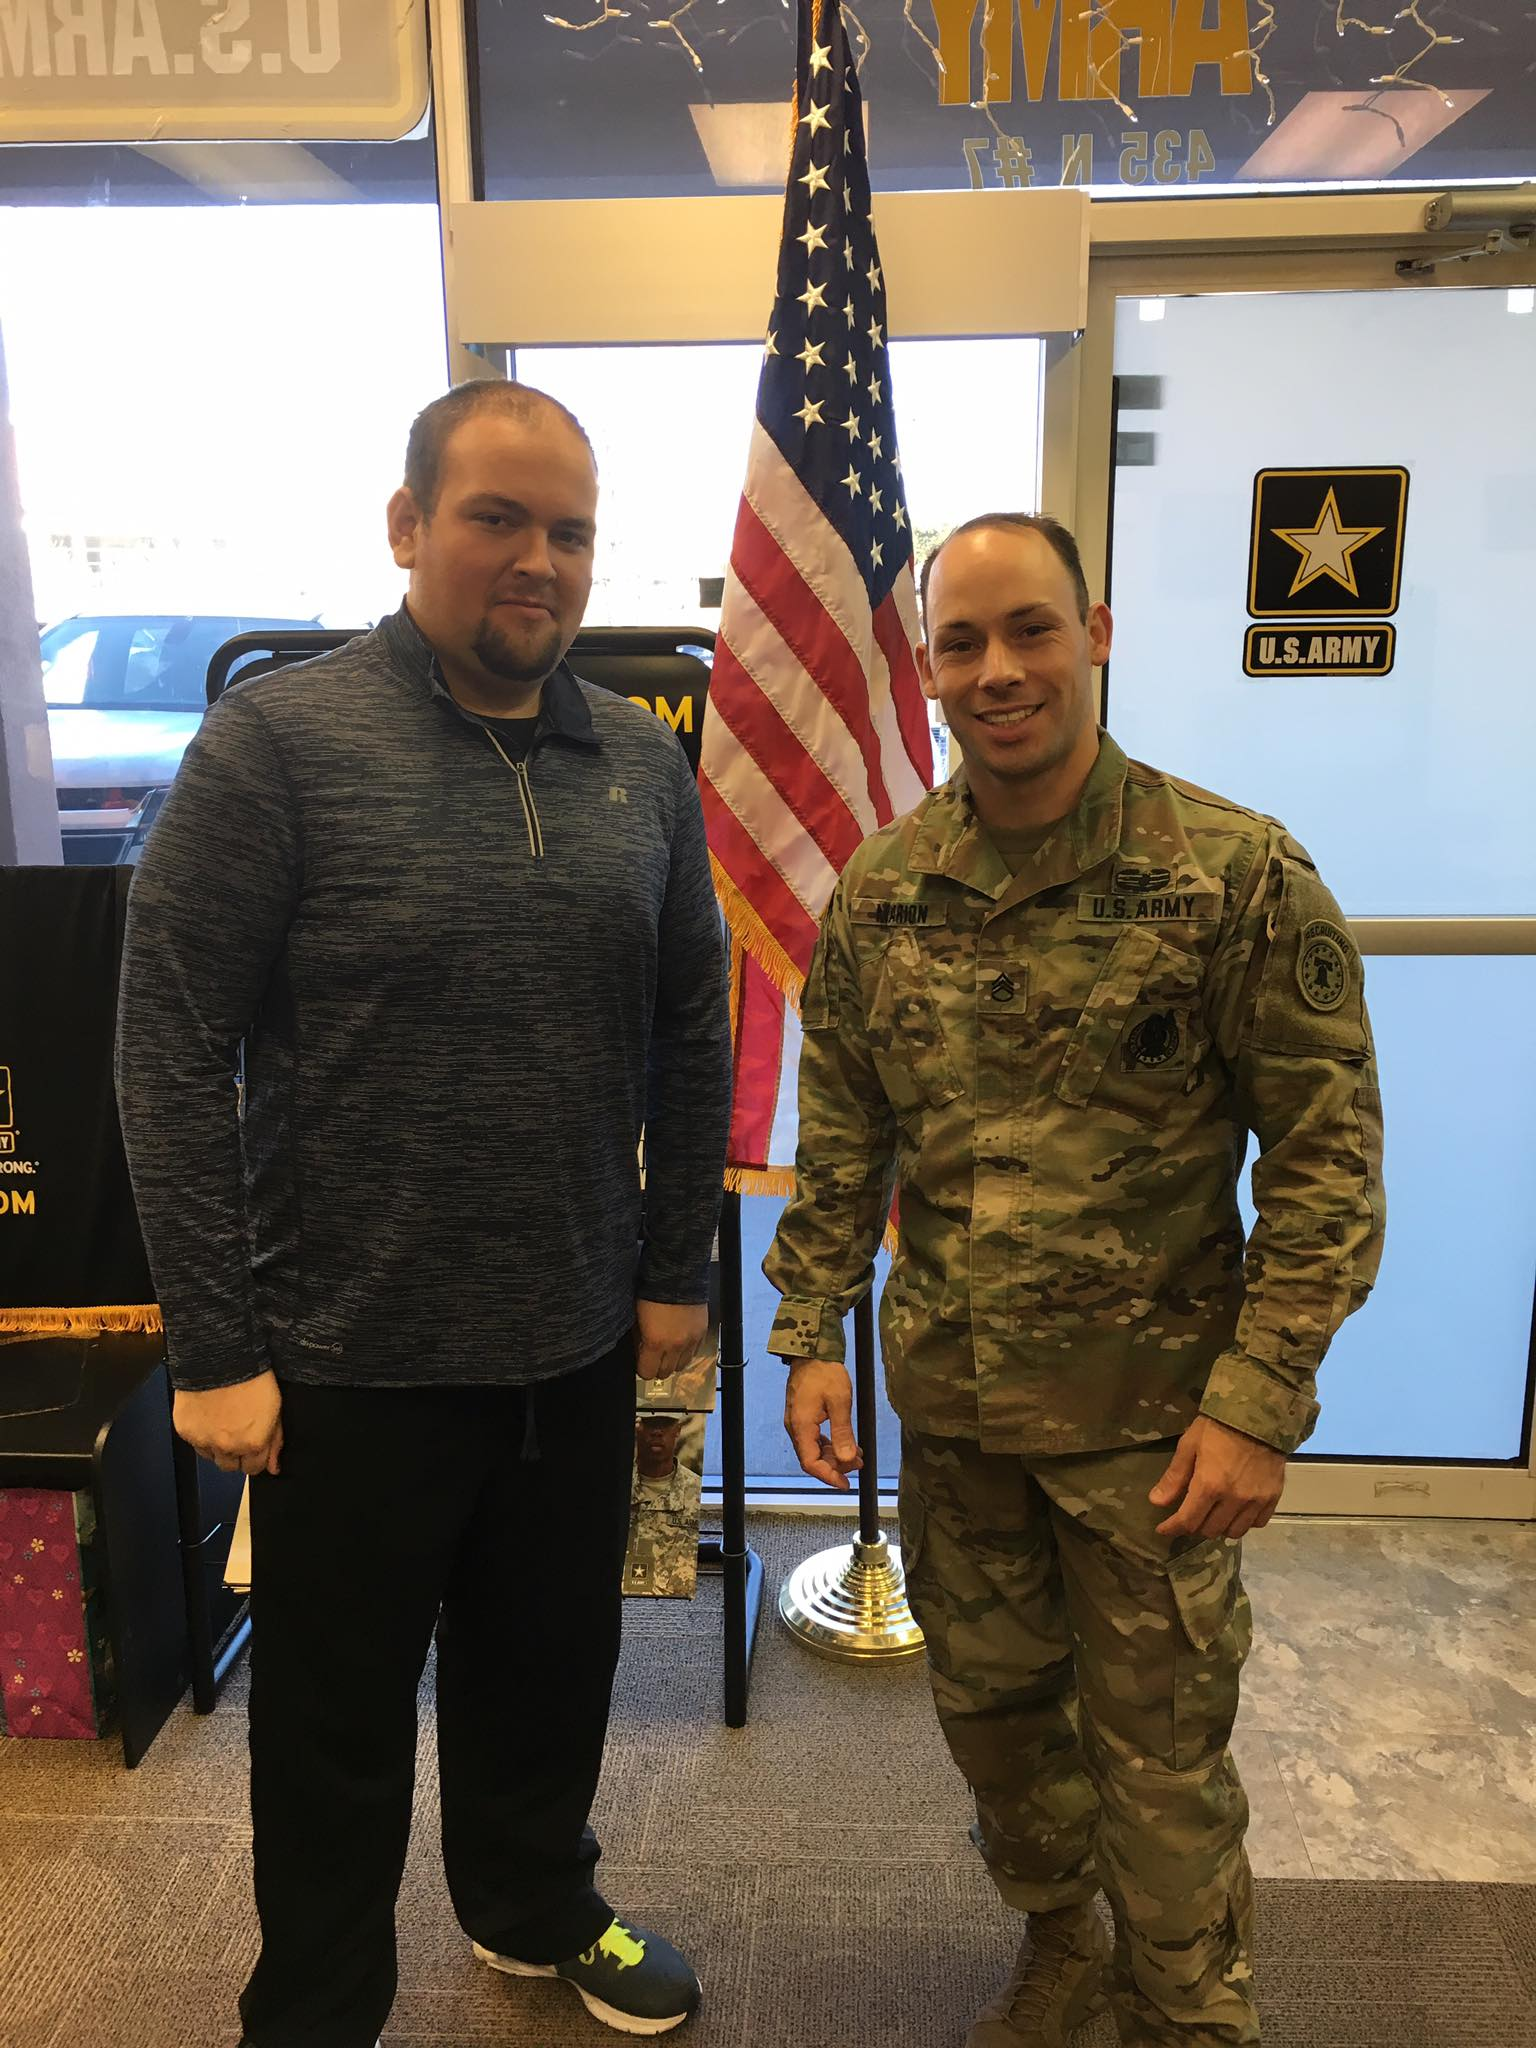 L-R: James Brotherton and Staff Sgt. Joshua Marion pose for a photo at the Army recruiting office. Brotherton enlisted after losing over 220 pounds, St. George, Utah, December, 2016 | Photo courtesy of Joshua Marion, St. George News